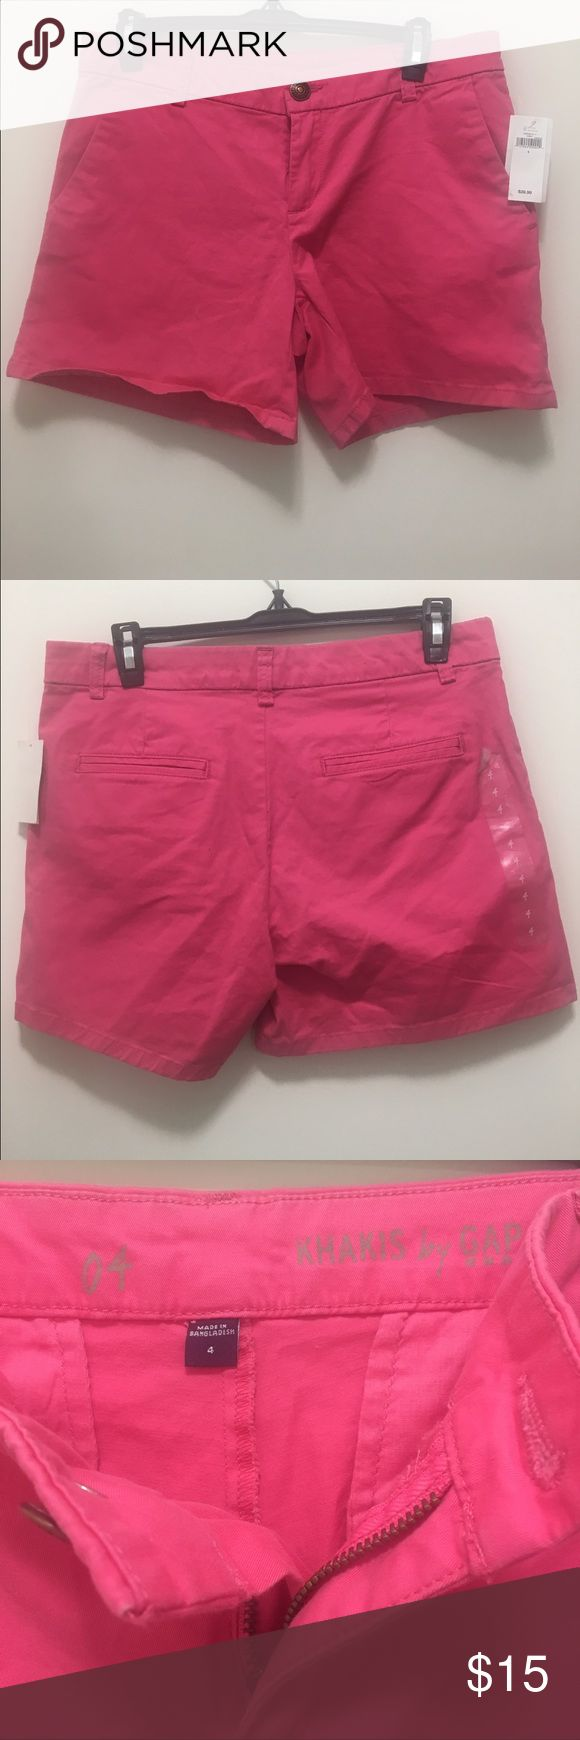 NWT Gap Women's Khaki Shorts Size 4, Rose Pink These GAP rose pink shorts are new with tags, never worn! Can be rolled up to desired length.  Come from a non-smoking, pet free home. GAP Shorts